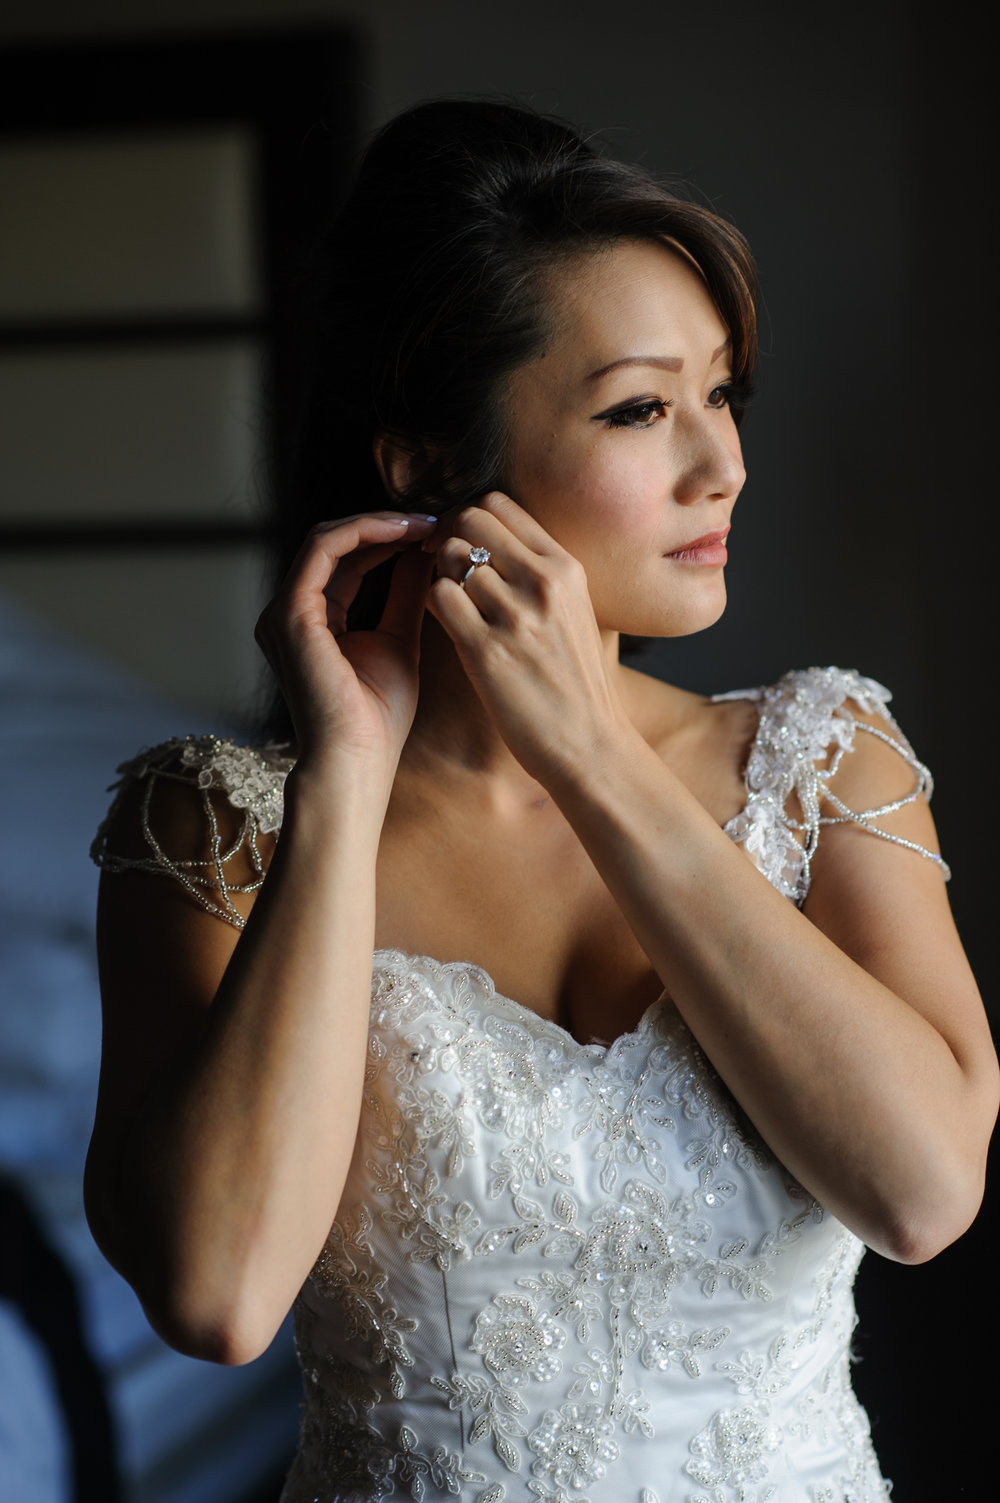 camilla-thuy-056-memorial-auditorium-sacramento-wedding-photographer-katherine-nicole-photography.JPG